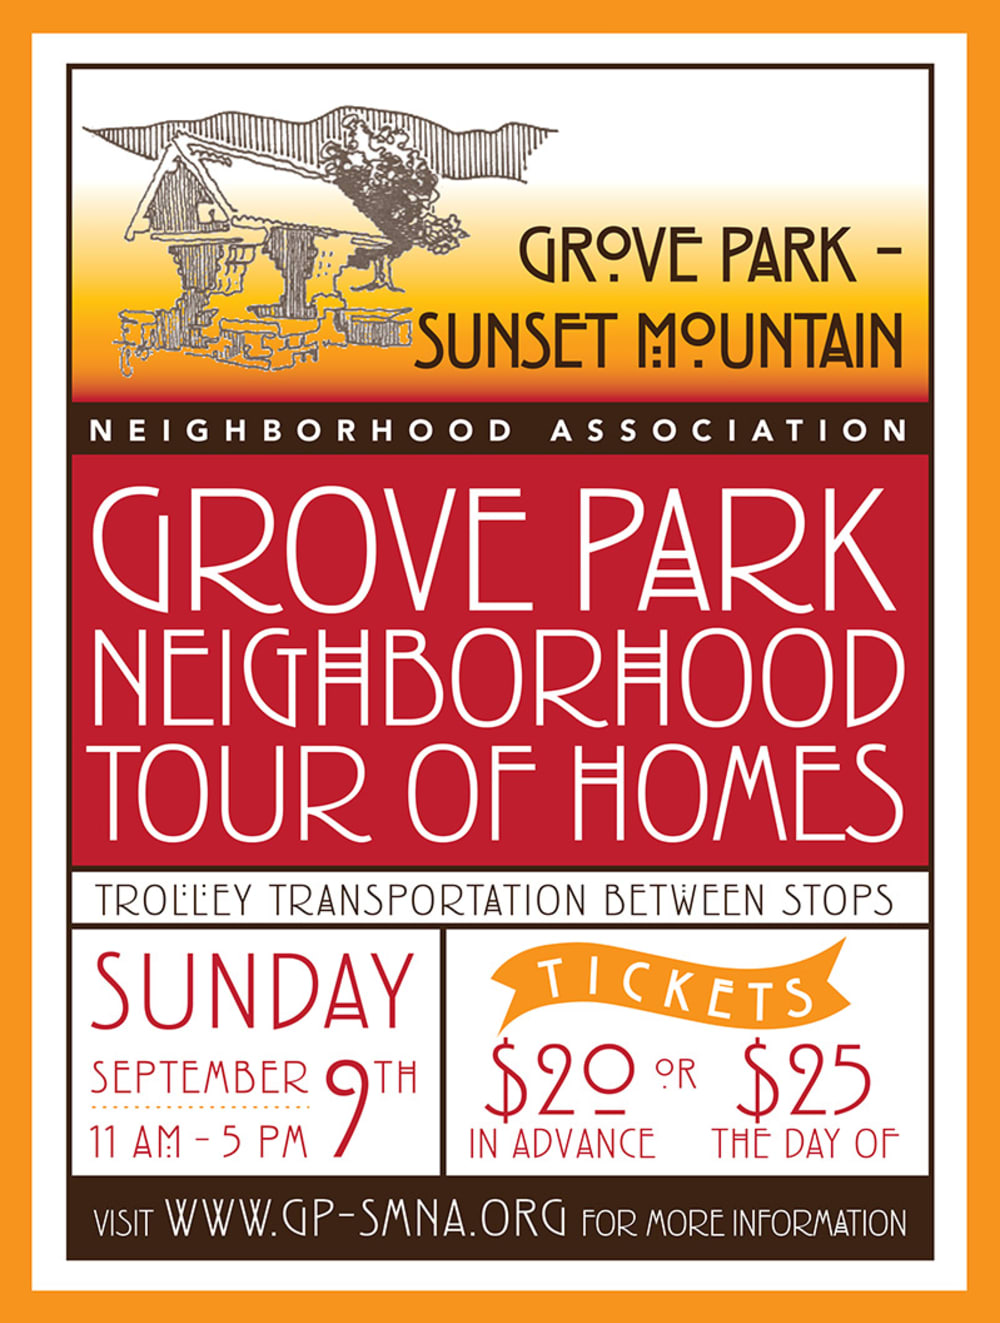 Grove Park Neighborhood Tour of Homes